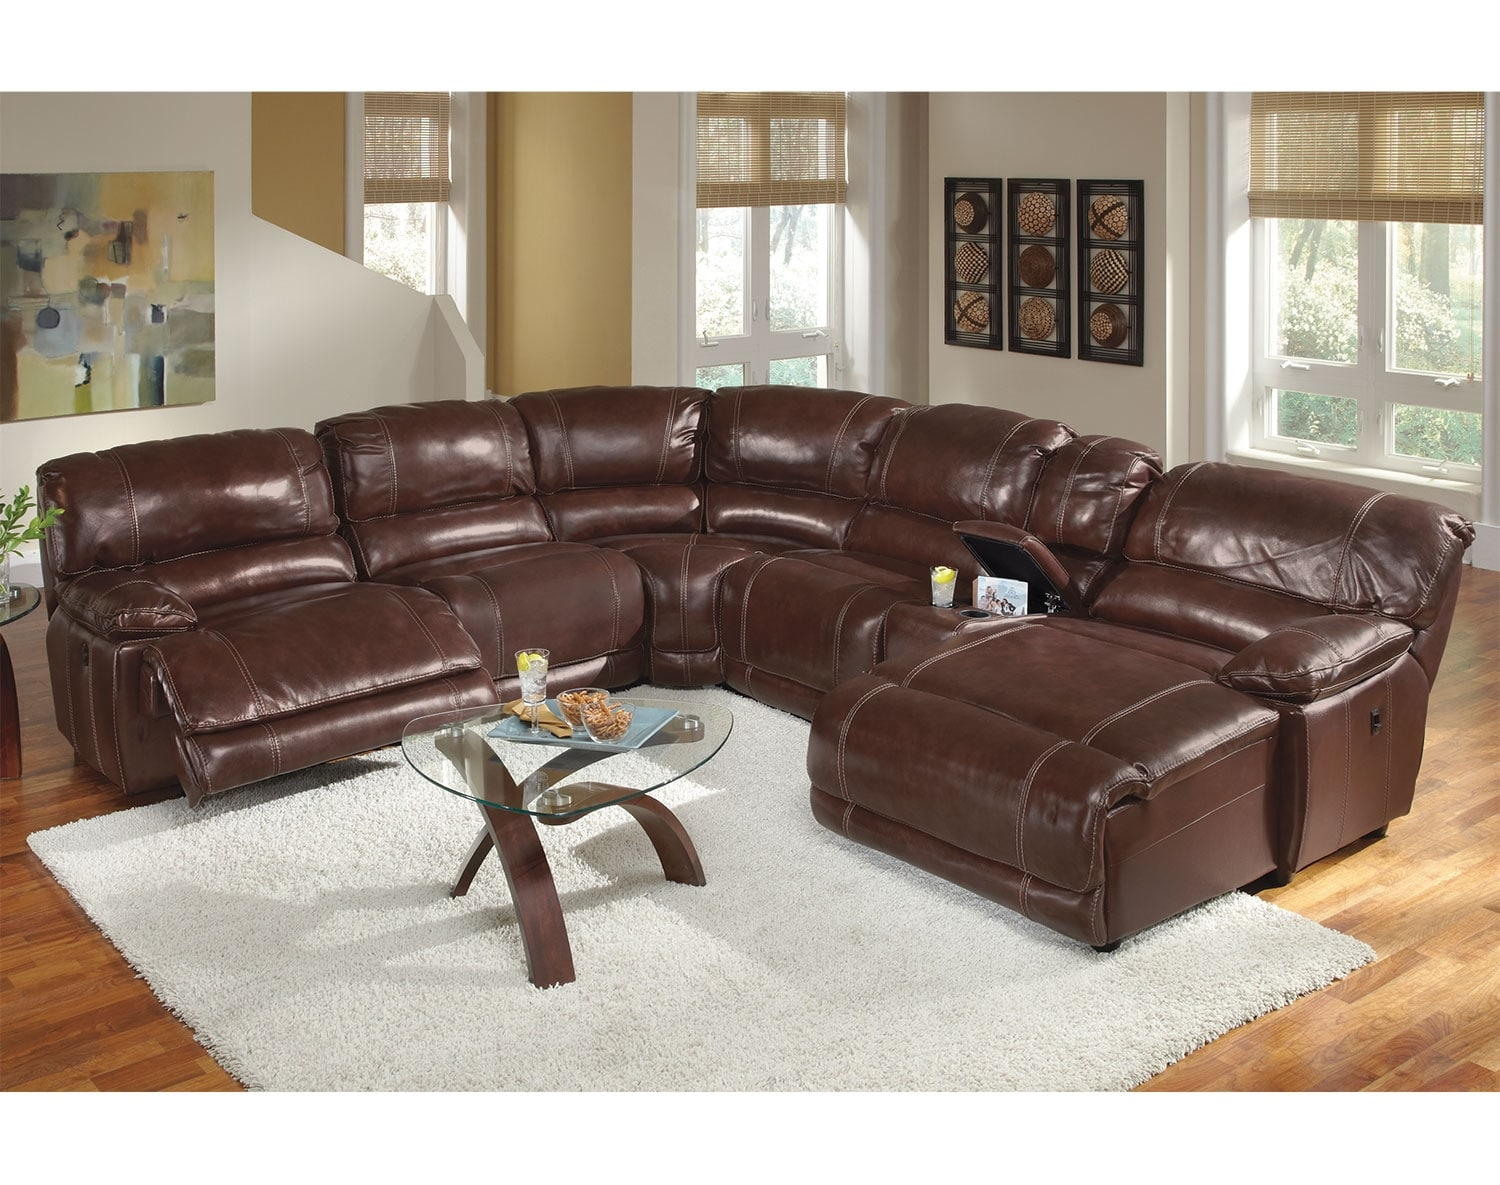 Living room collections value city furniture for Best value living room furniture